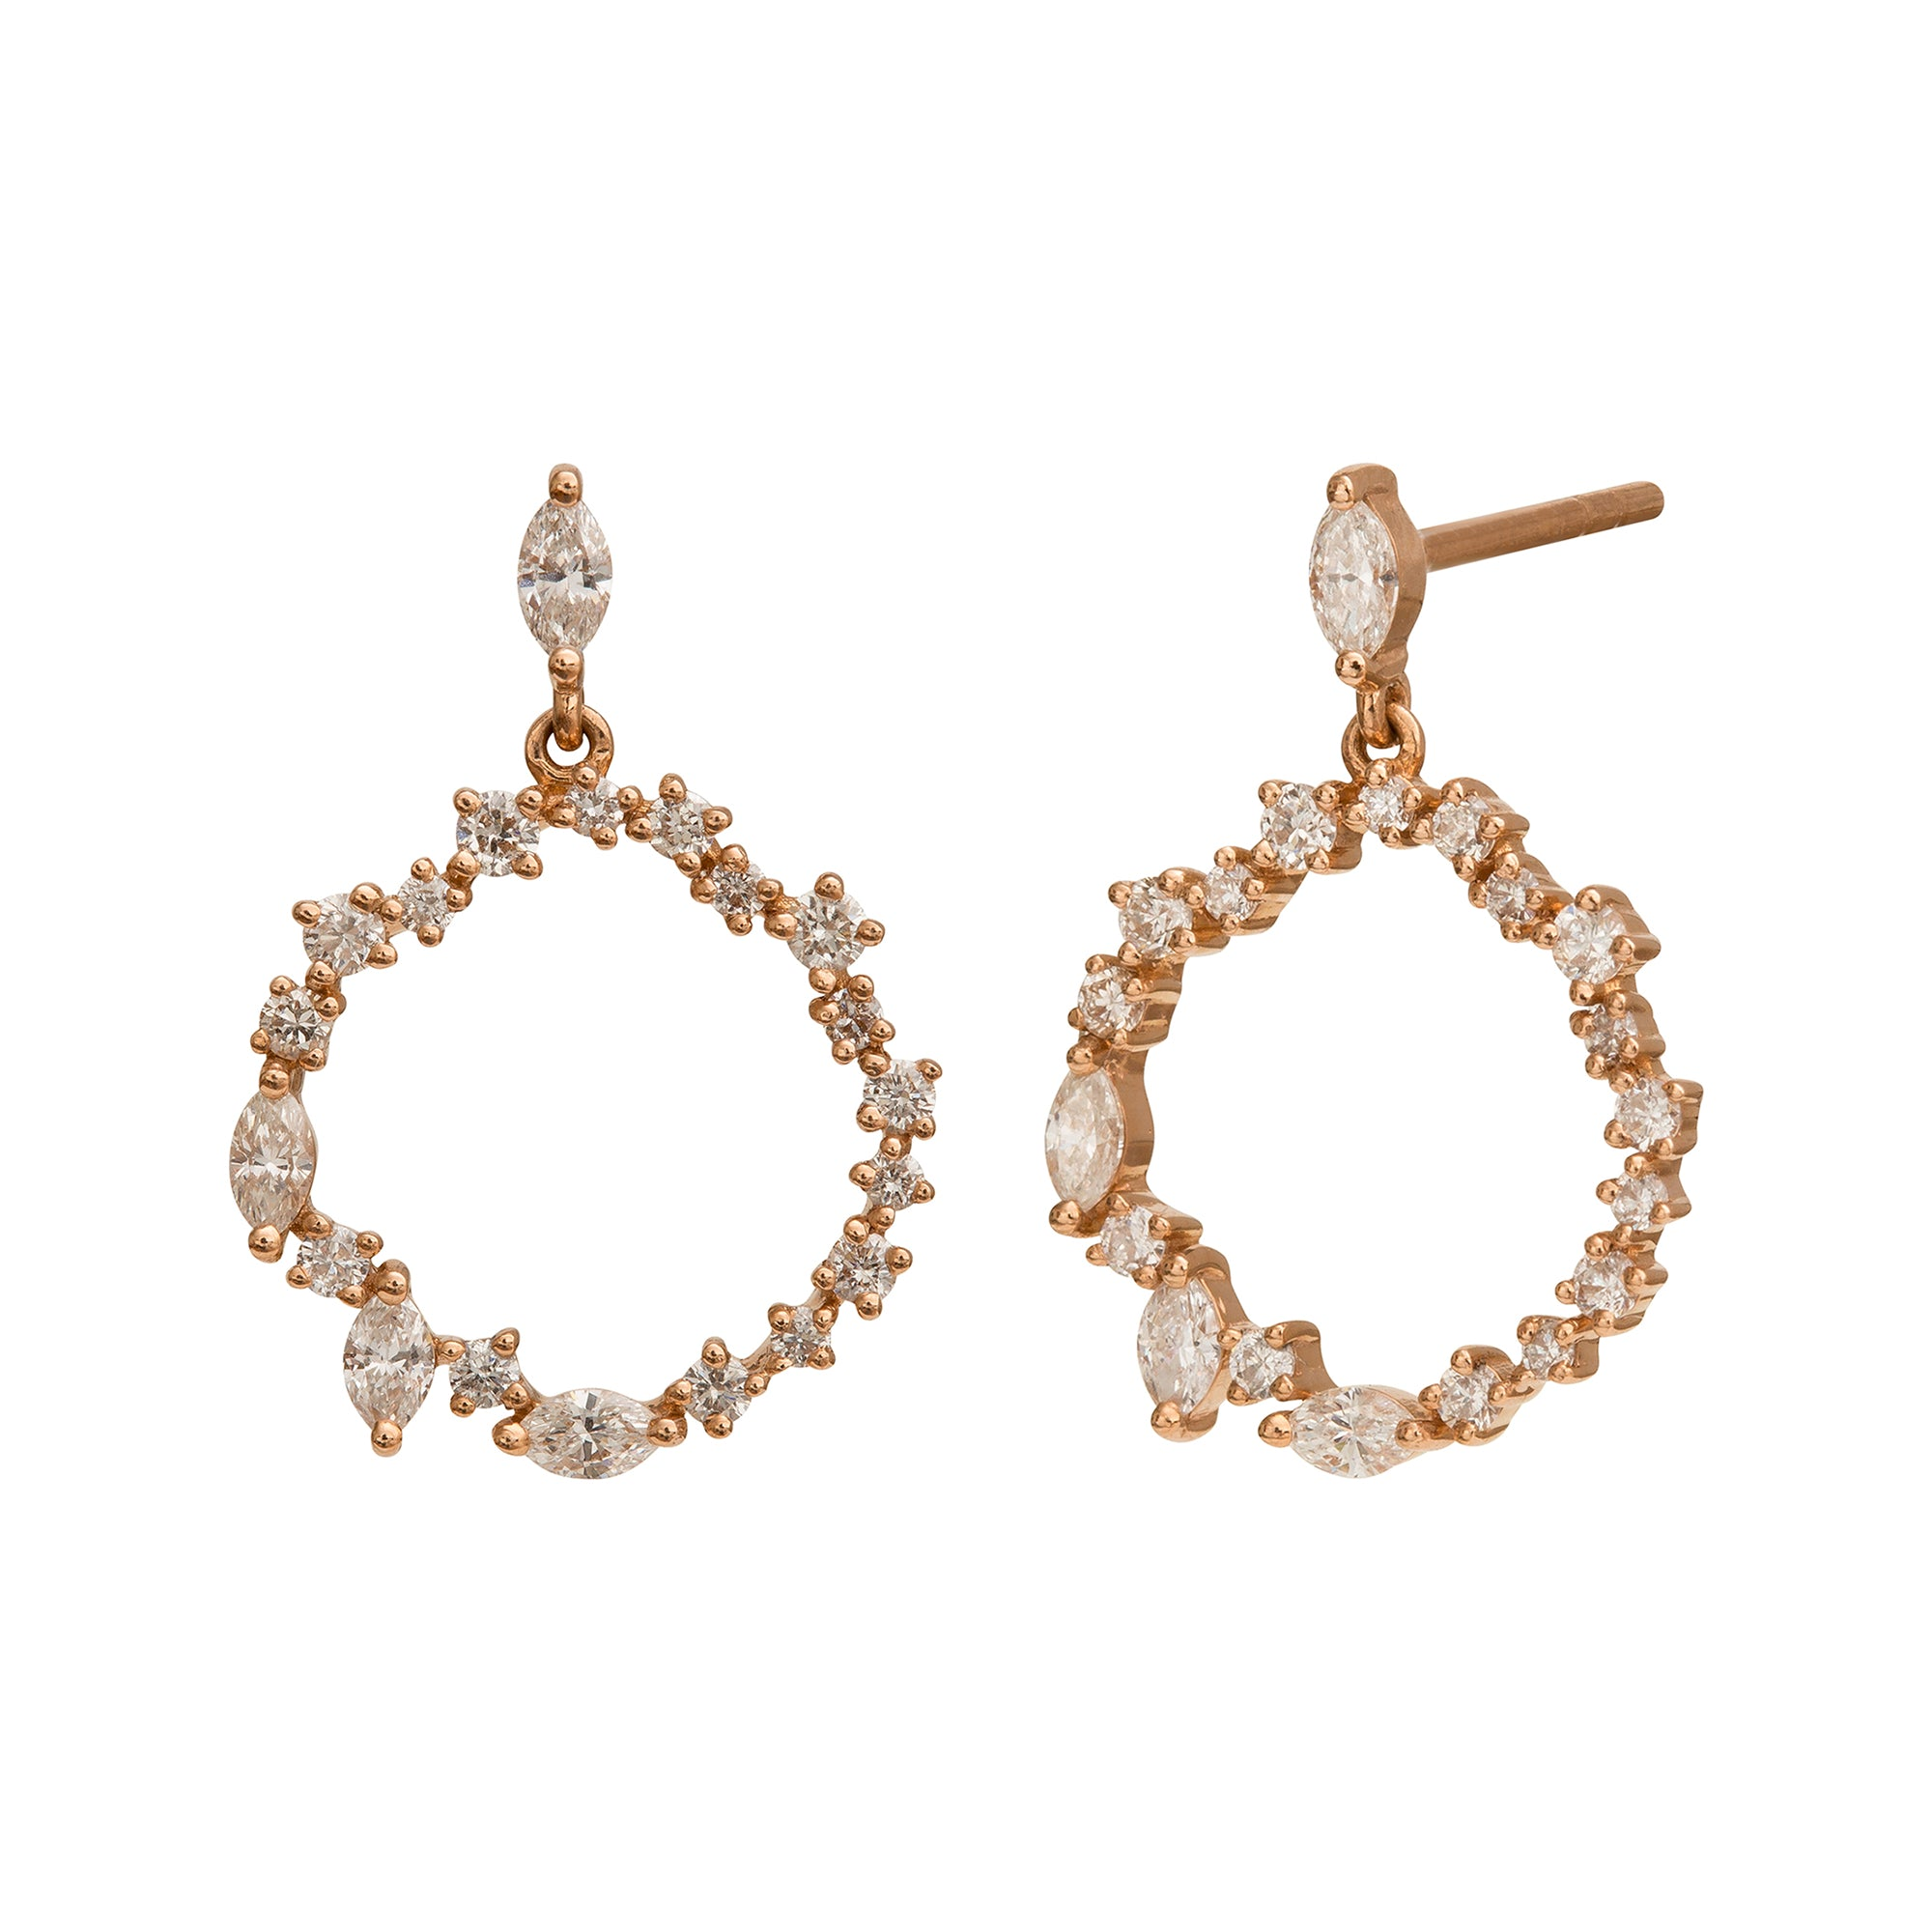 Cascade Eternity Circle Earrings by Rosa de la Cruz for Broken English Jewelry